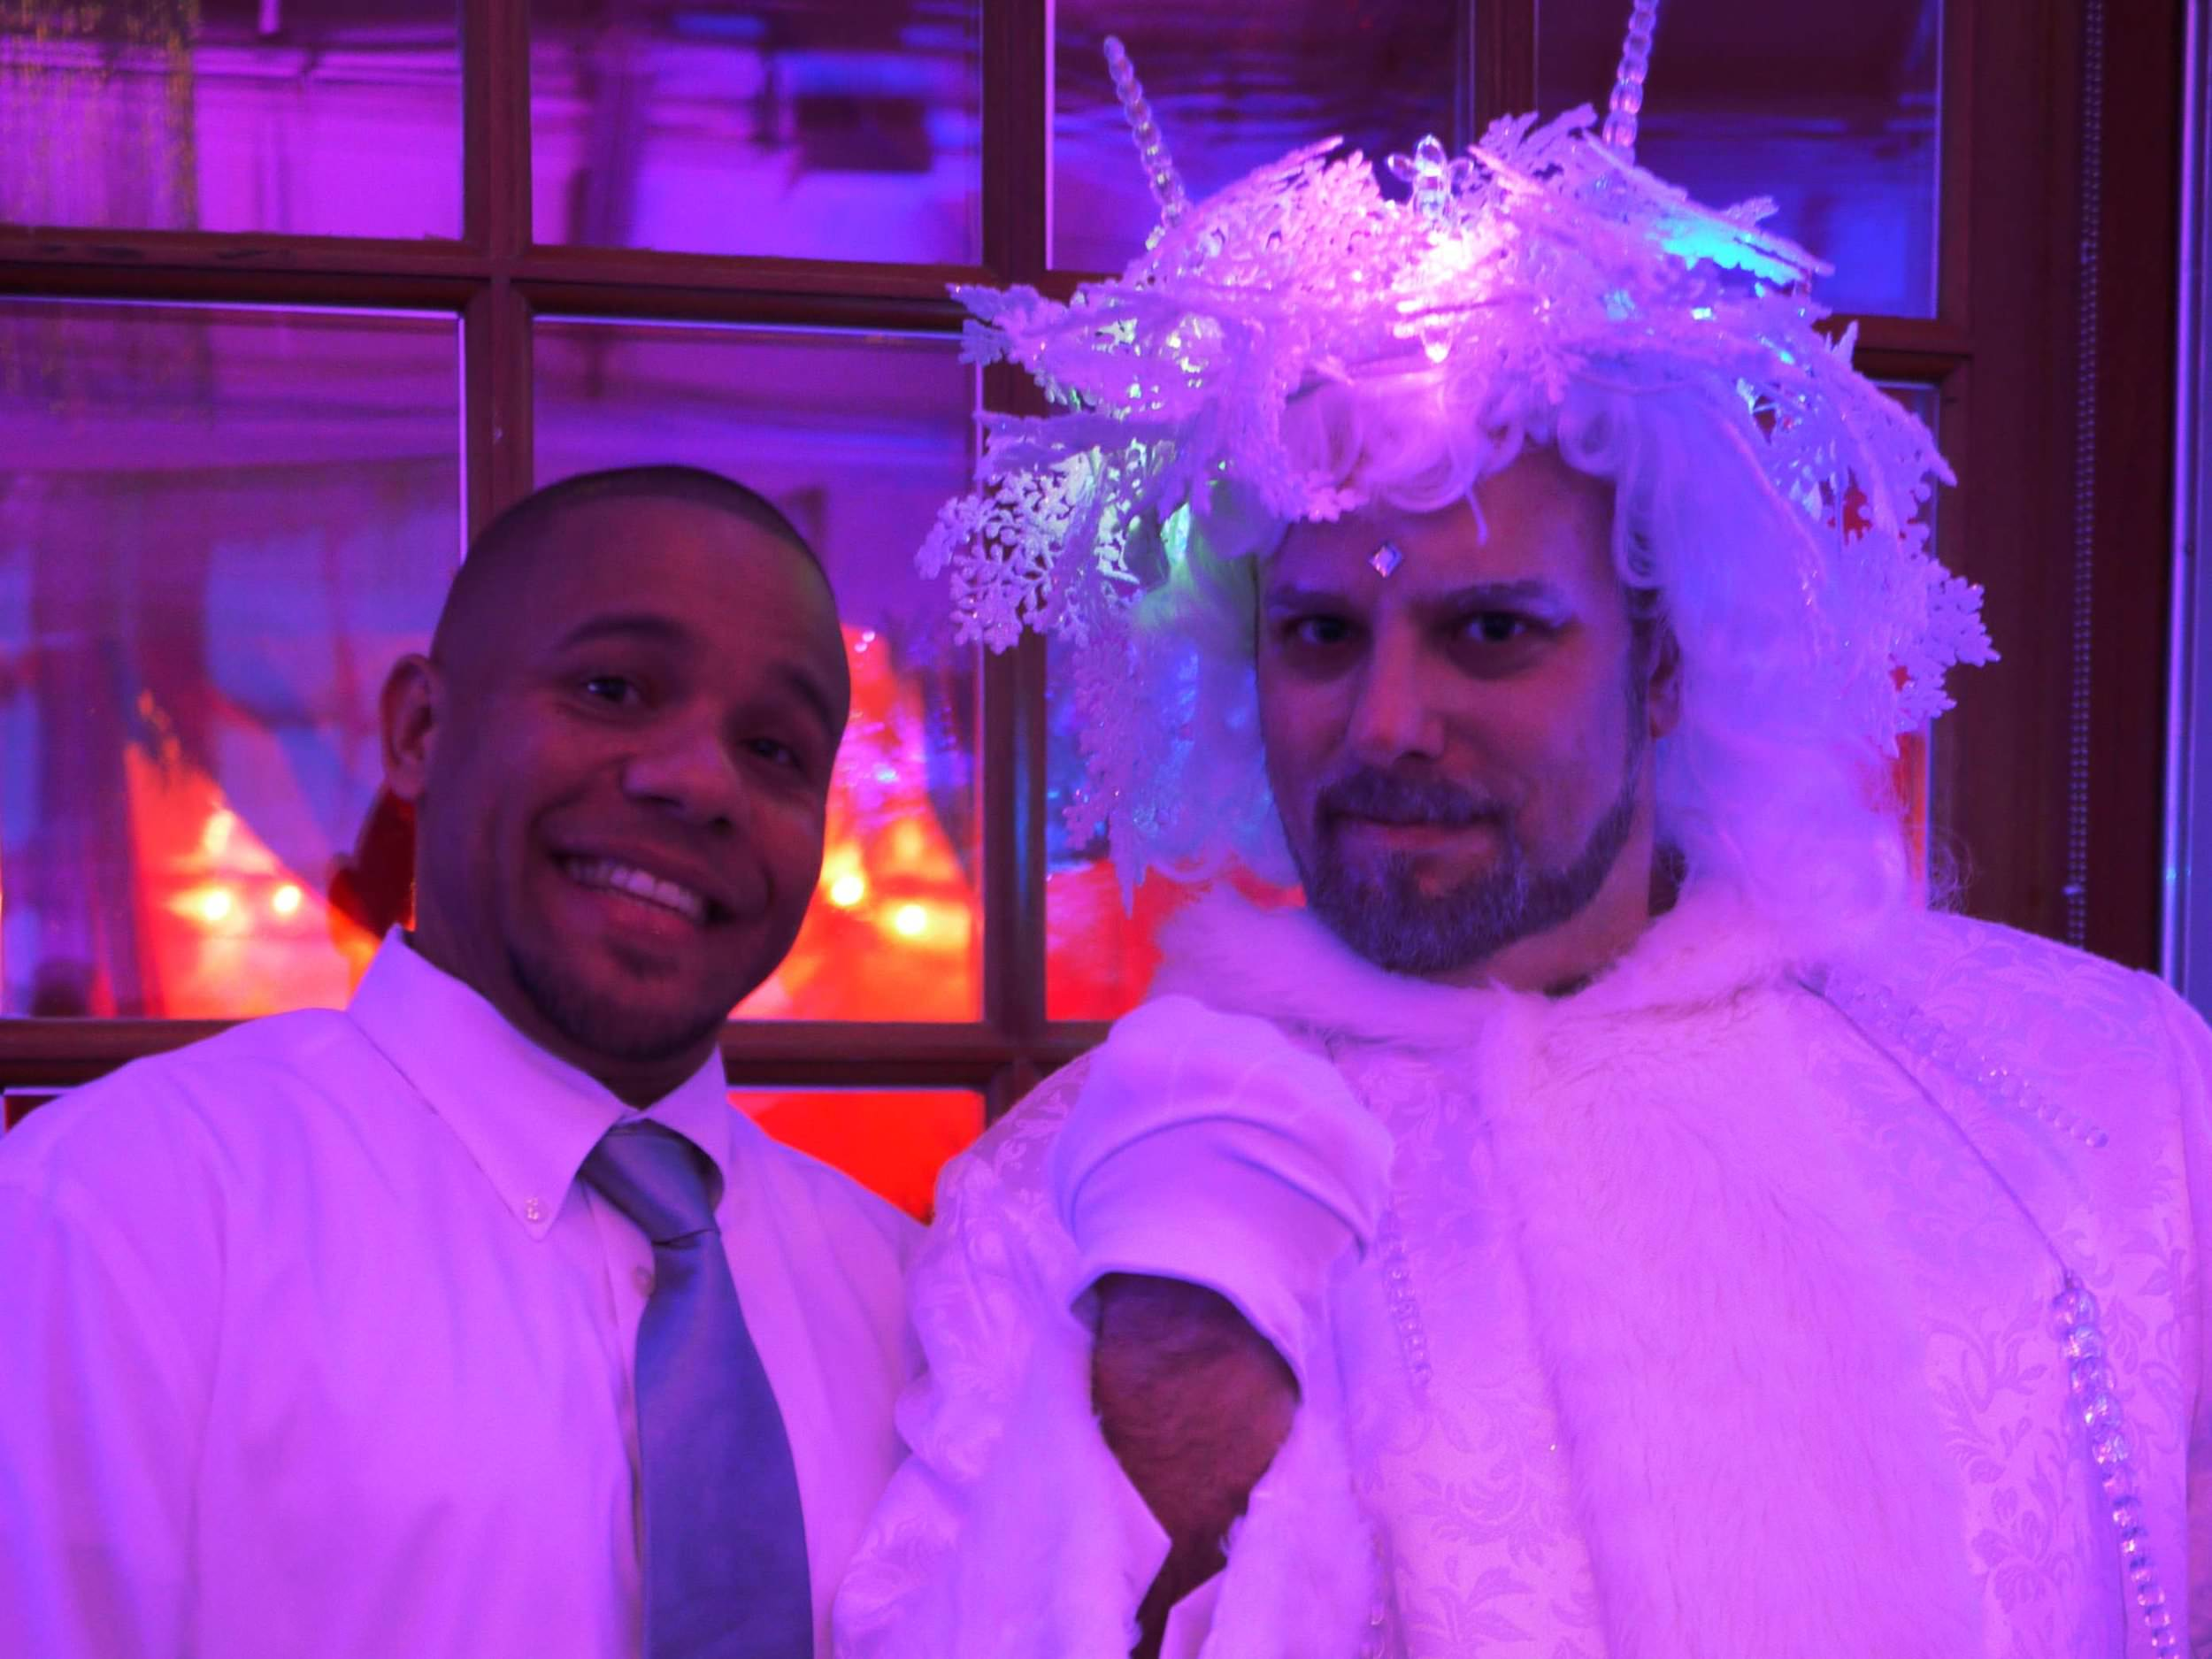 snow-king-holiday-corporate-party-in-boston-ma-with-harrington-events.jpg